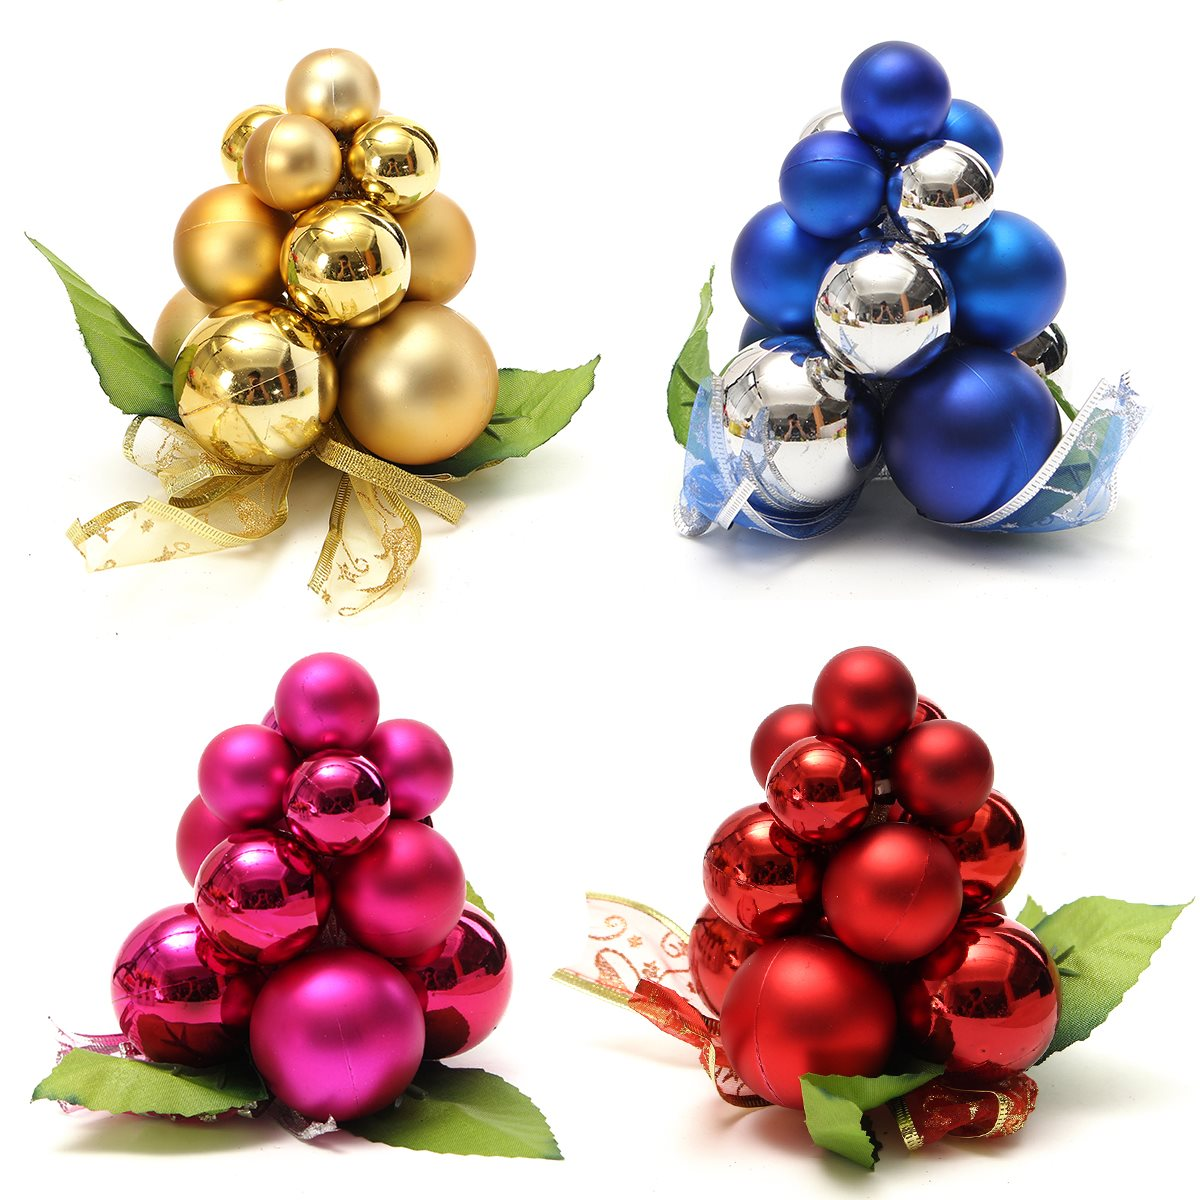 Miniature xmas tree ornaments - Christmas Grape Shape Ball String Ornaments Miniatures Christmas Tree Decoration For Home New Year Decorations Crafts